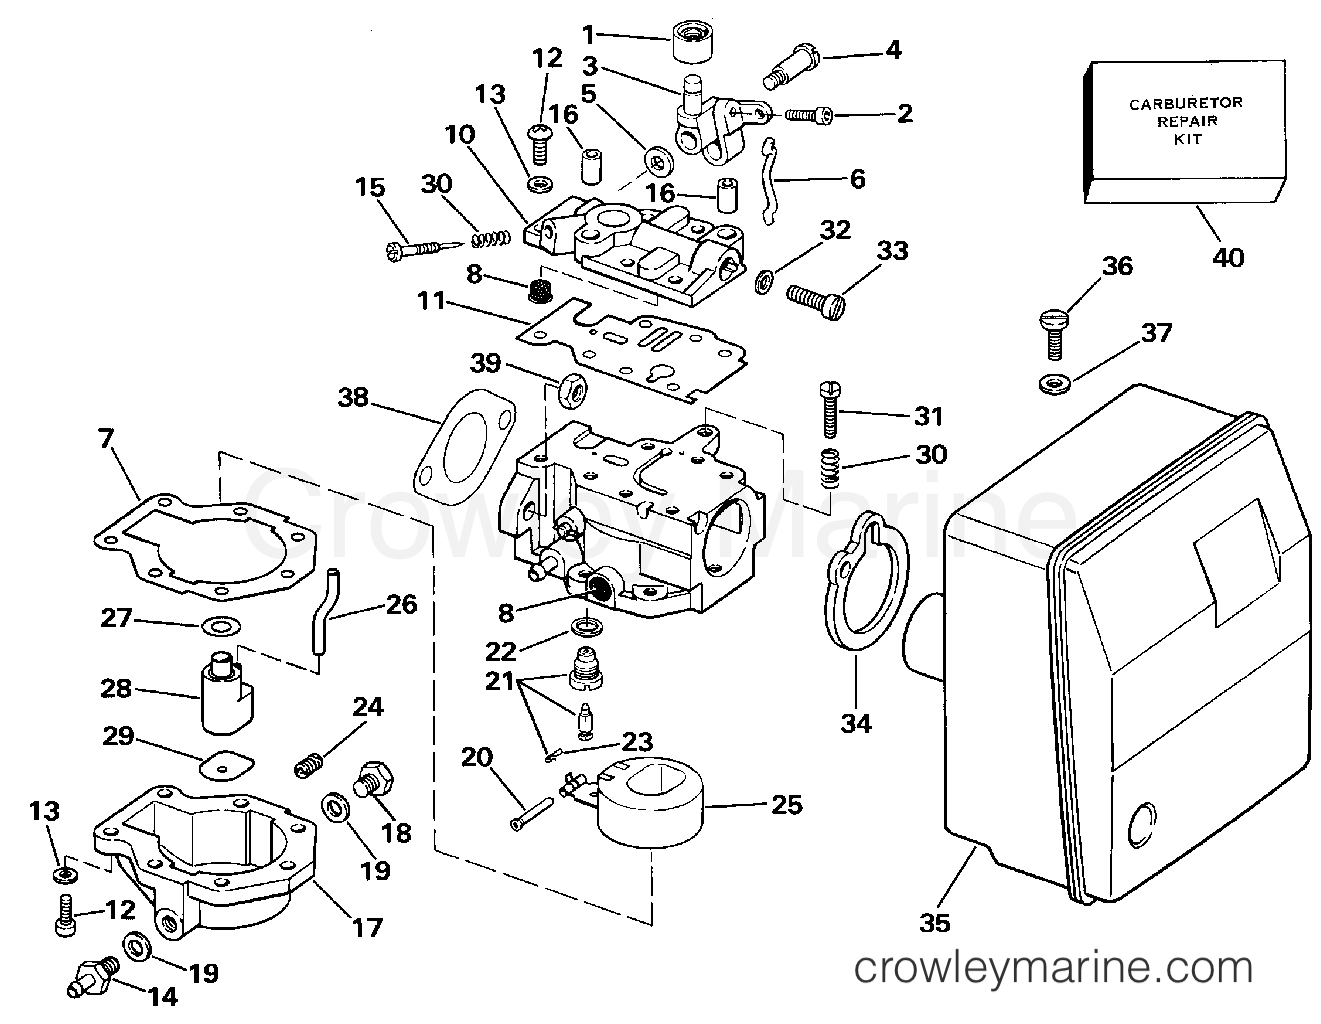 hight resolution of 1989 evinrude outboards 6 e6rcec carburetor section